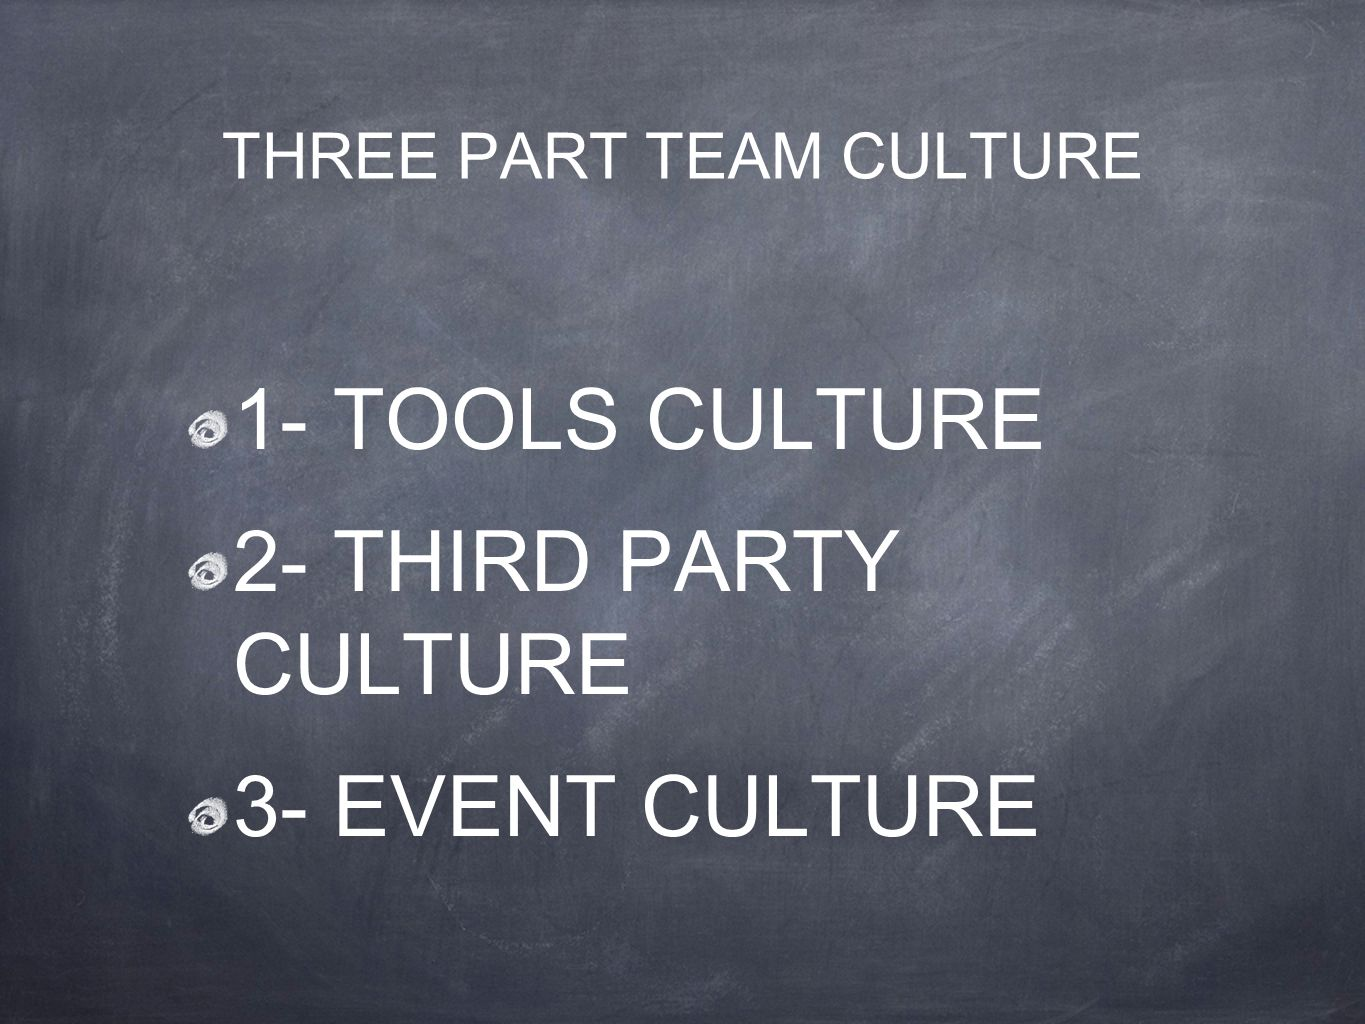 THREE PART TEAM CULTURE